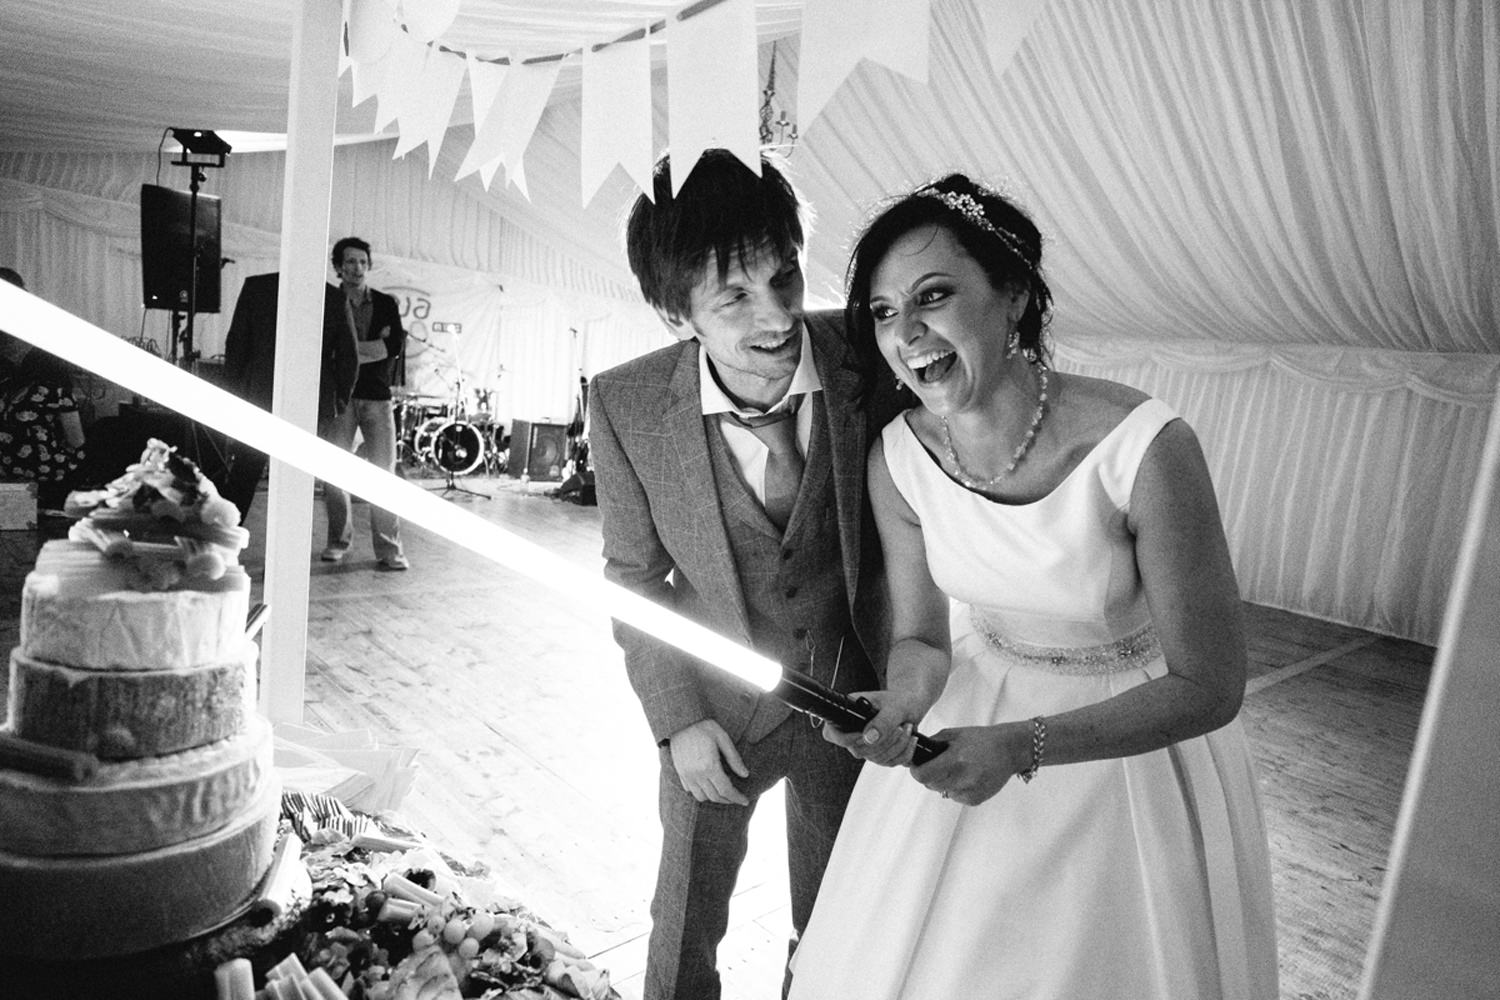 bride and groom cut cake with light saber